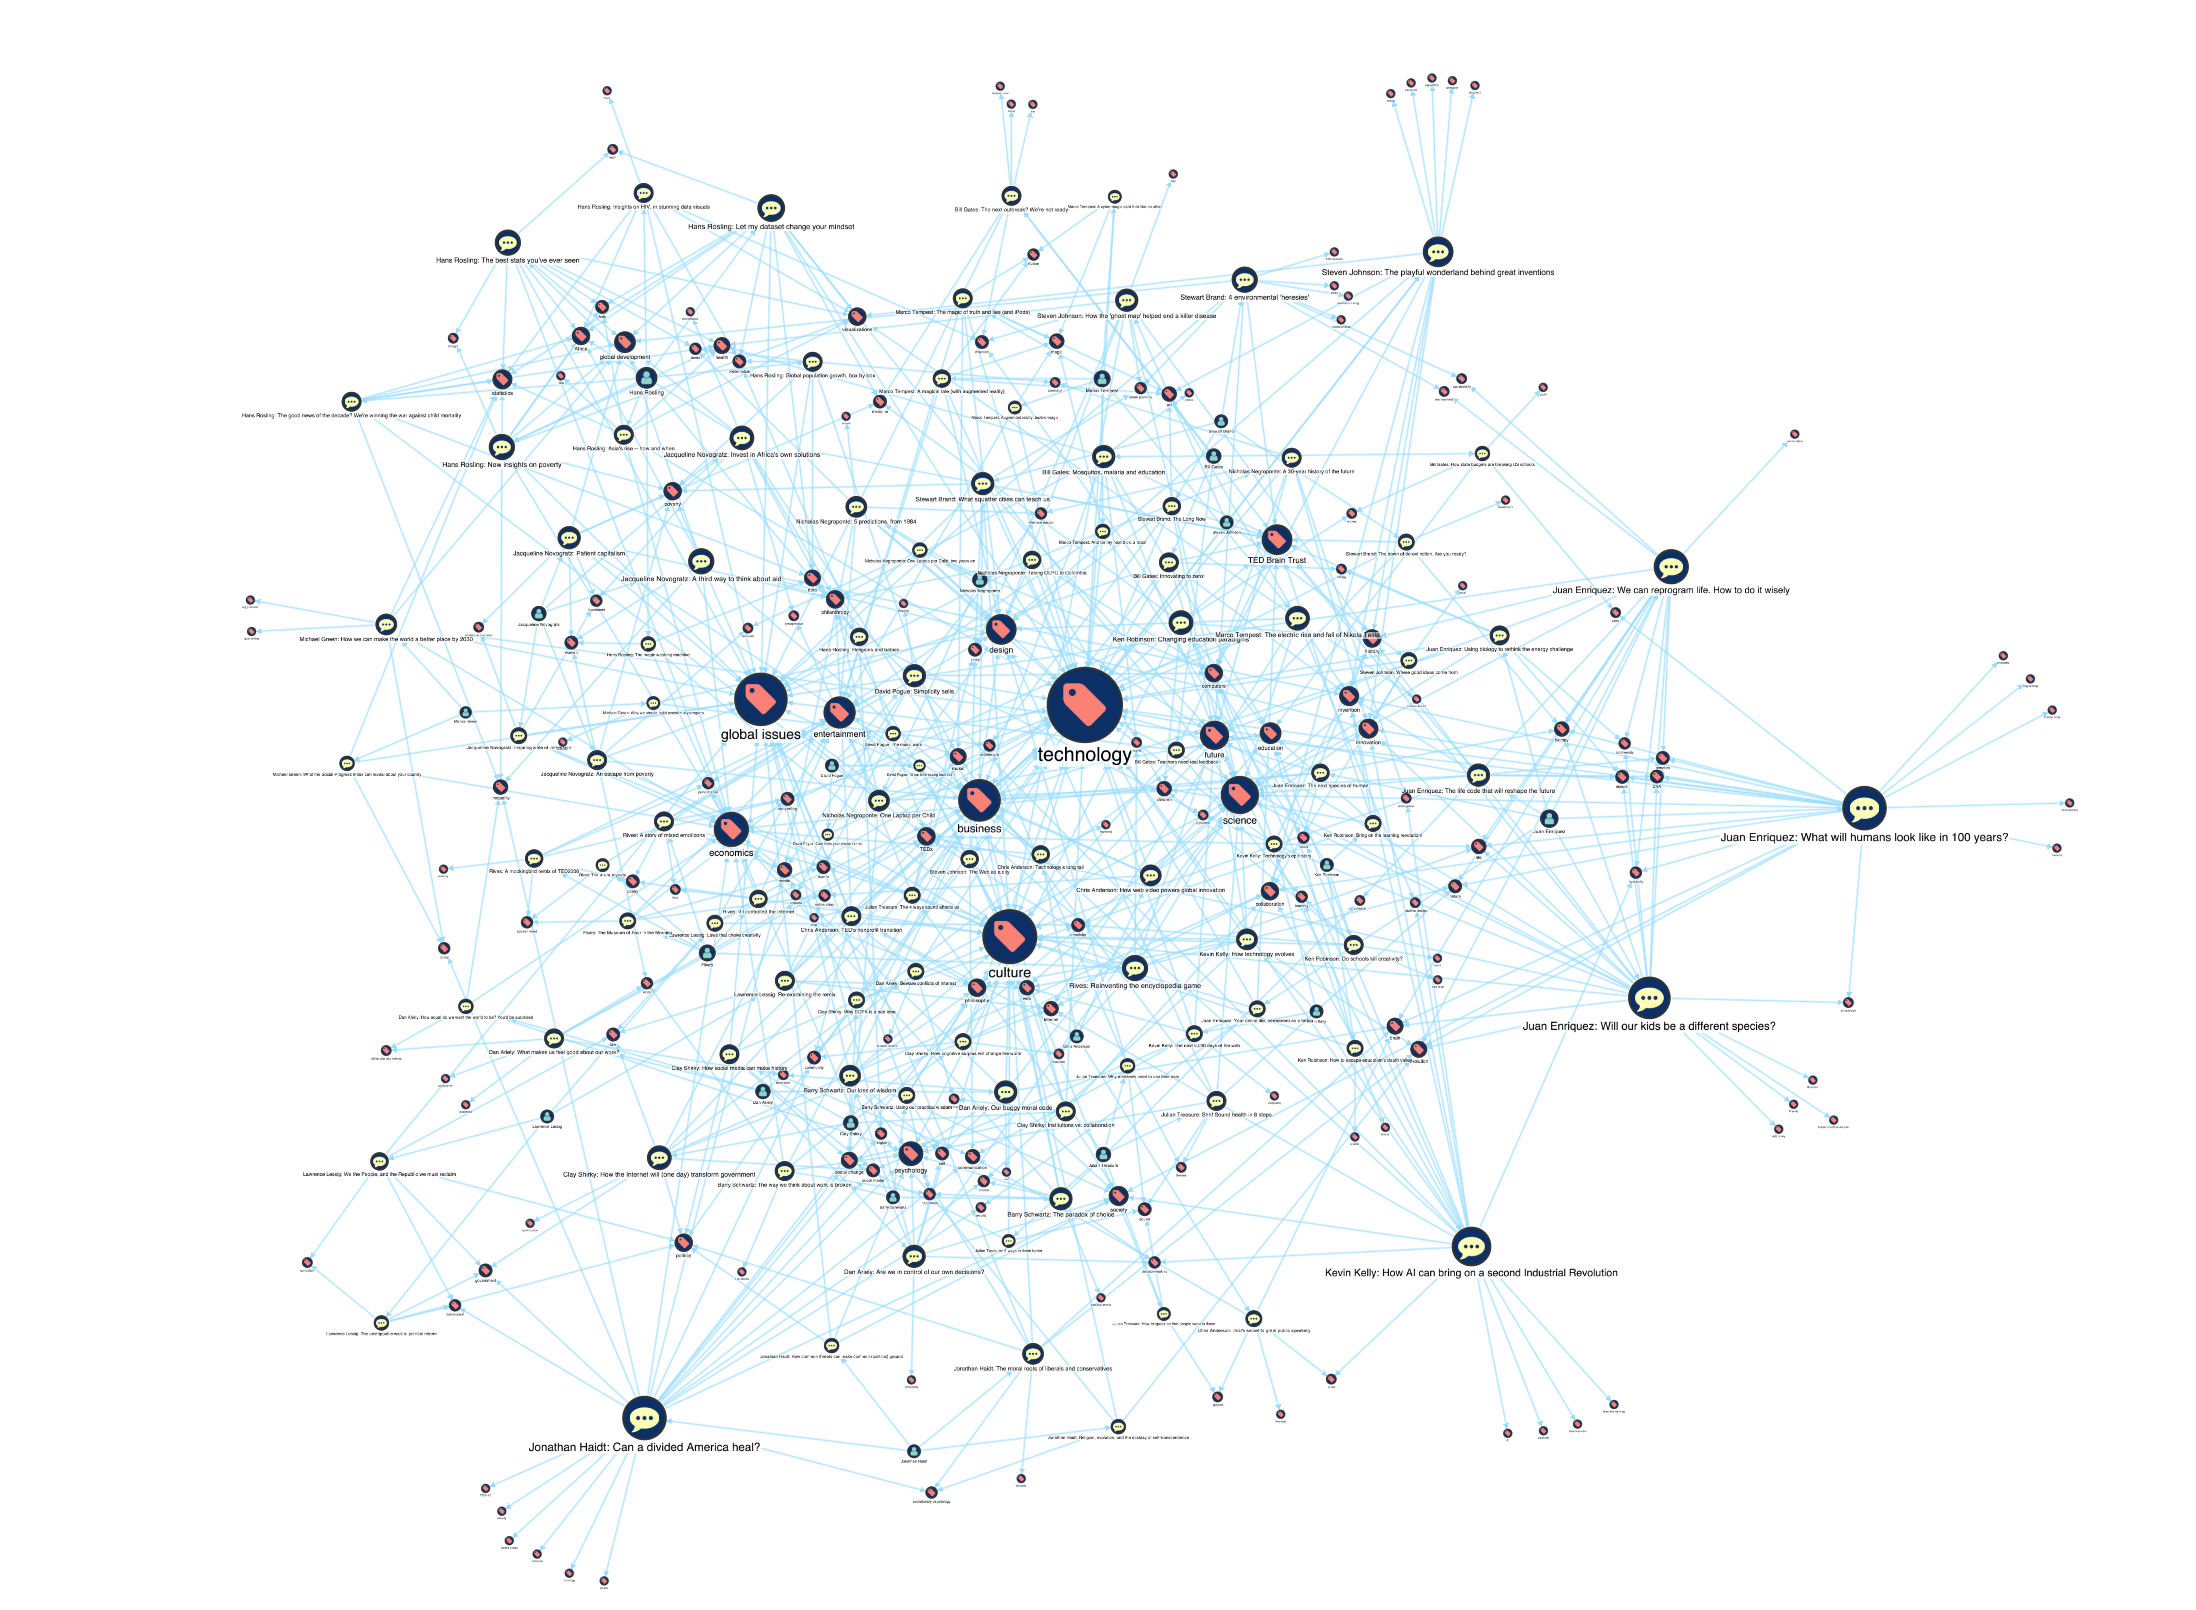 Individual nodes sized by PageRank reveal popular keywords